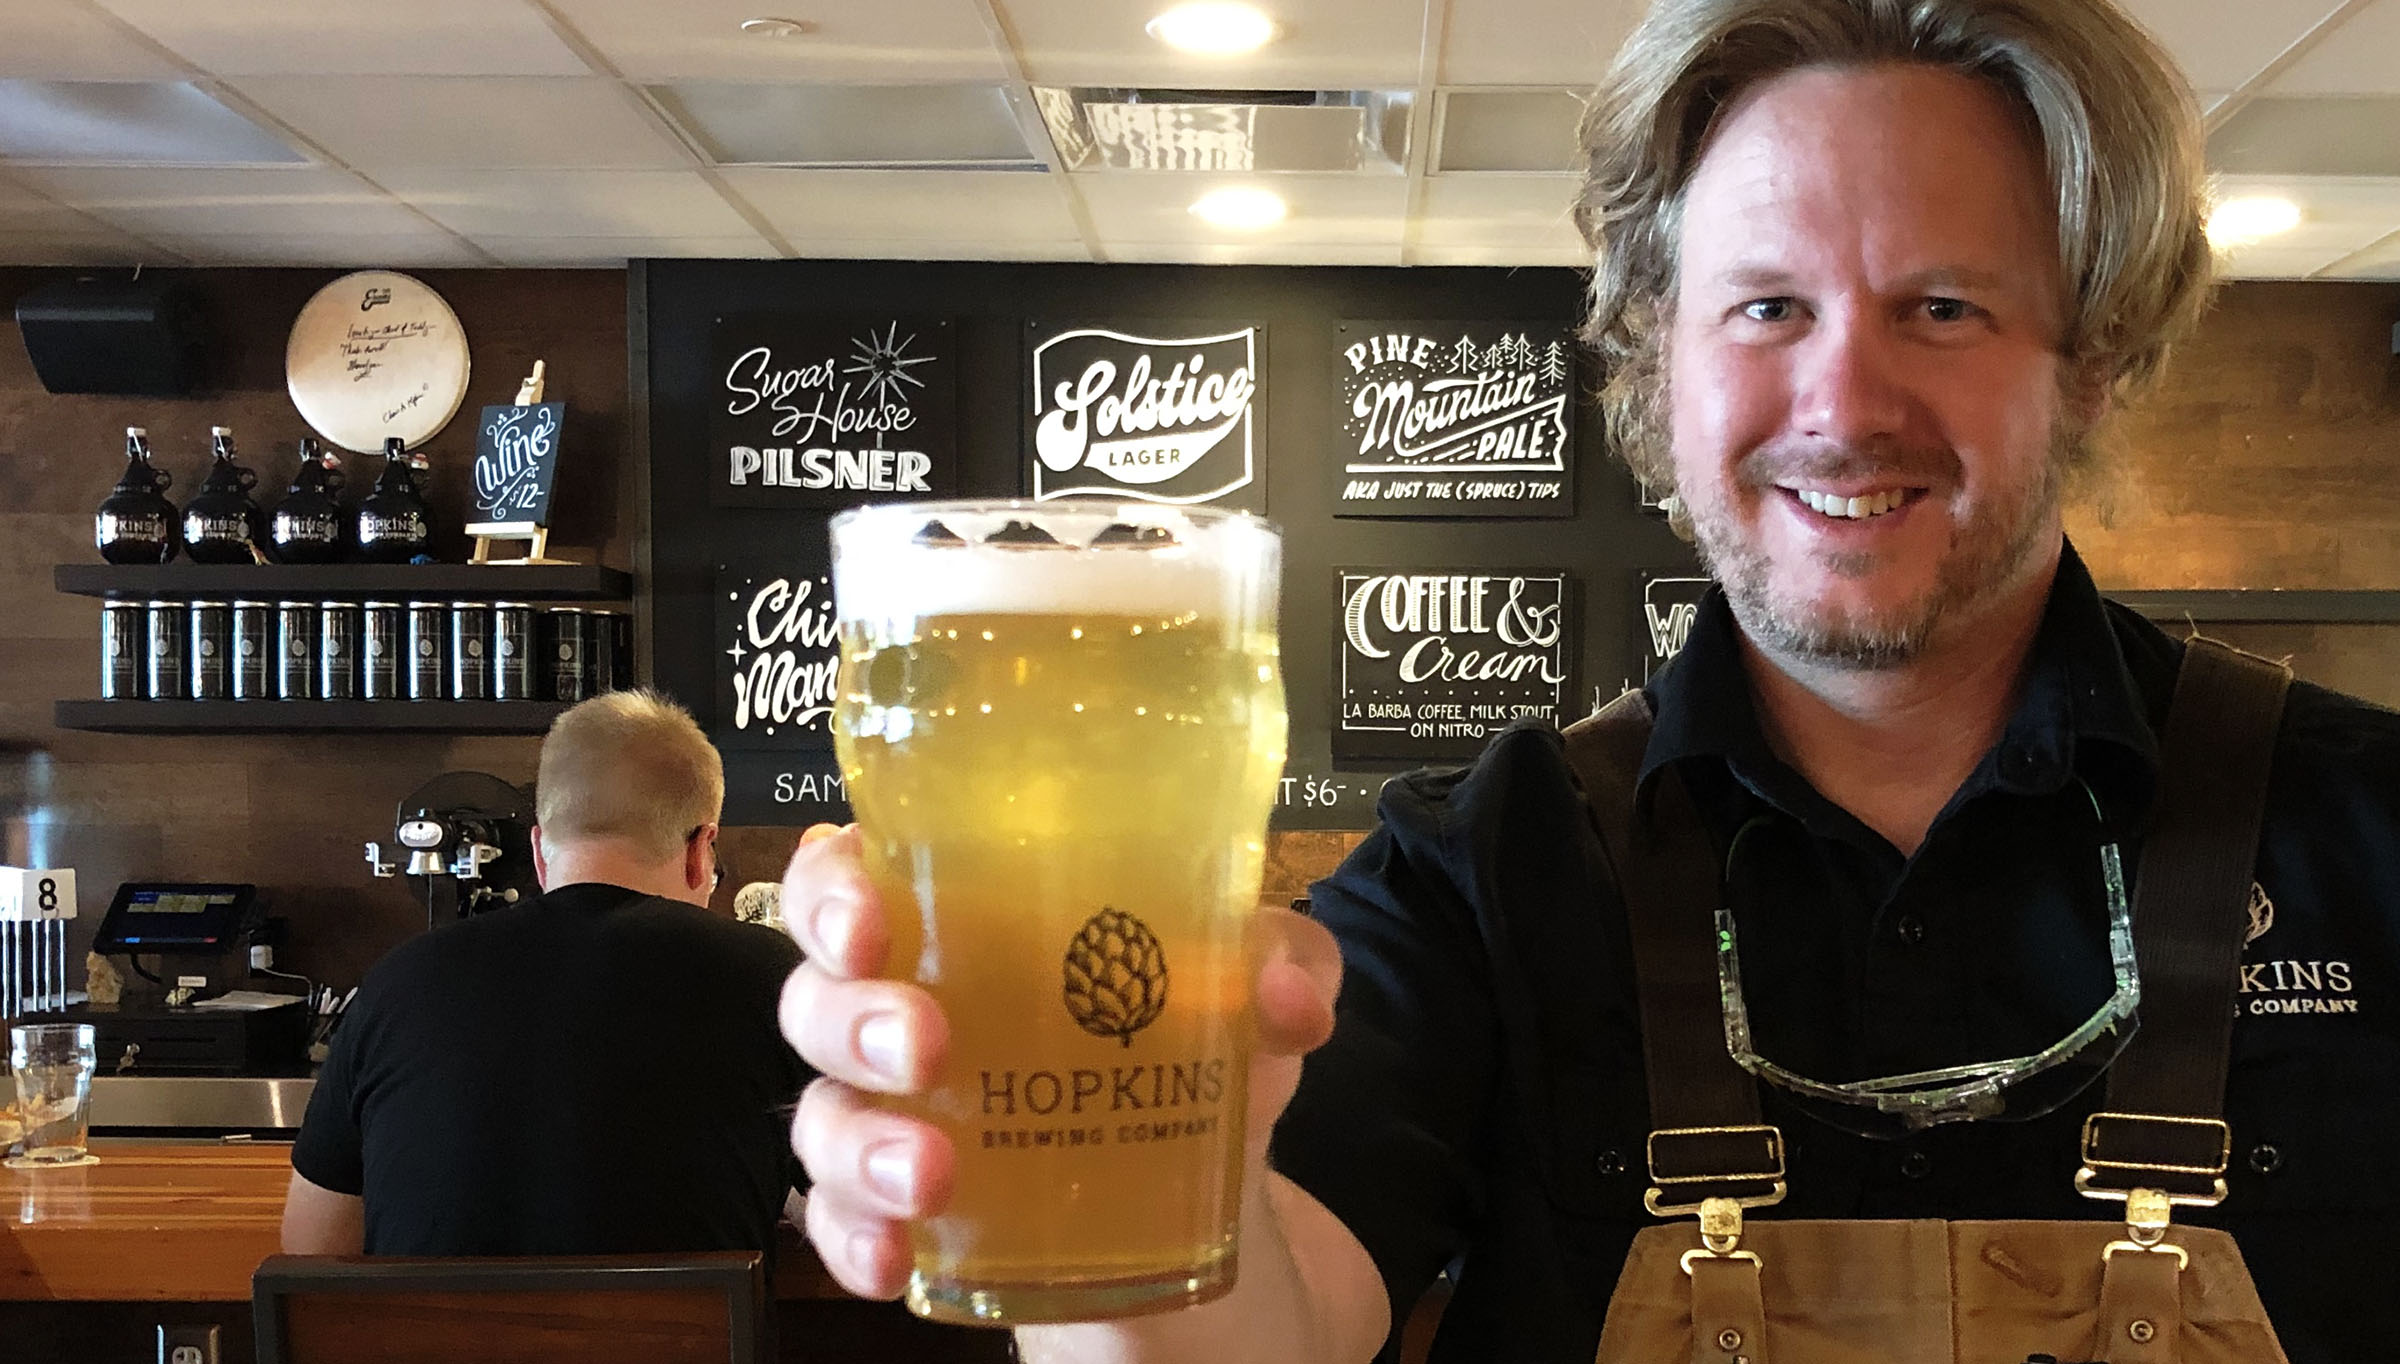 Chad Hopkins, brewer at Hopkins Brewing Co. in Salt Lake City, and a pint of his Sugar House Pilsner. He grew up a mile from where his brewpub now stands.